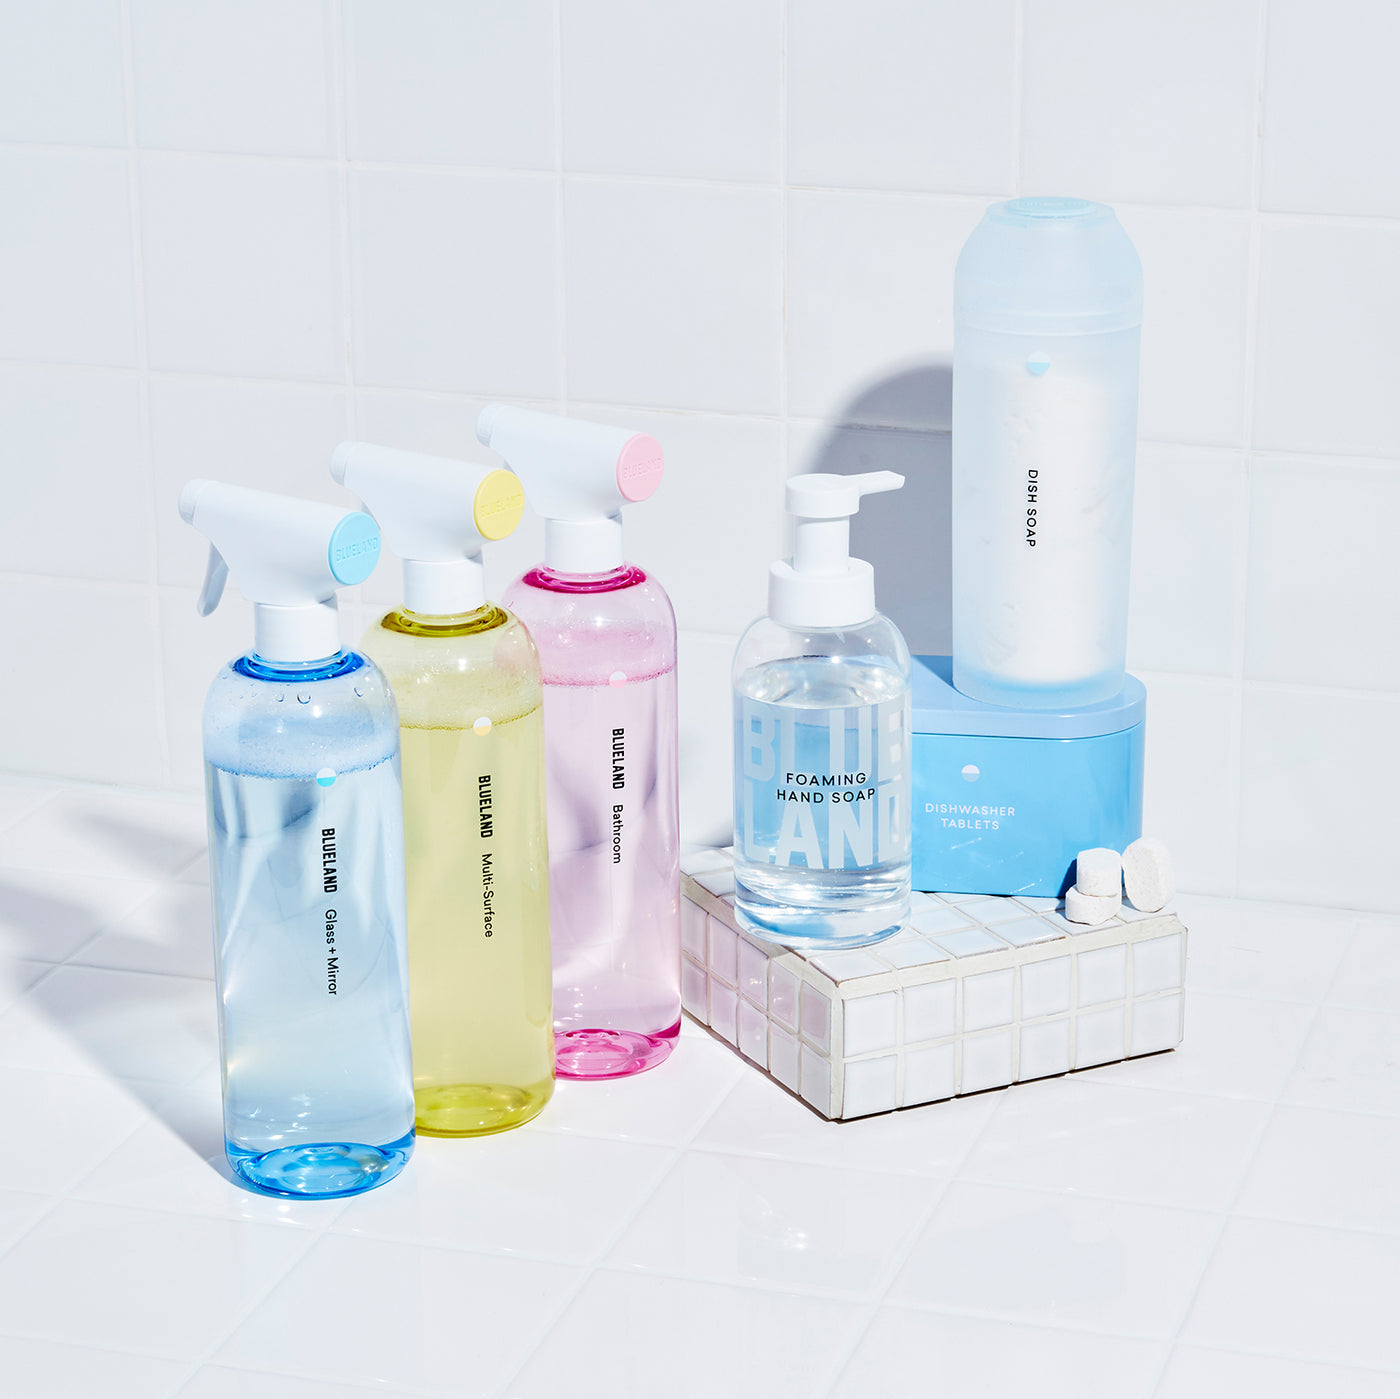 The Everyday Clean: 6 Refillable, reusable cleaning vessels with tablets or powder. 3 spray Cleaners all in tritan reusable bottles with three tablets. A glass Foaming Hand Soap Bottle and foaming hand soap tablet. A silicone shaker filled with Powder Dish Soap, a refillable steel coated tin container with dishwasher tablets.